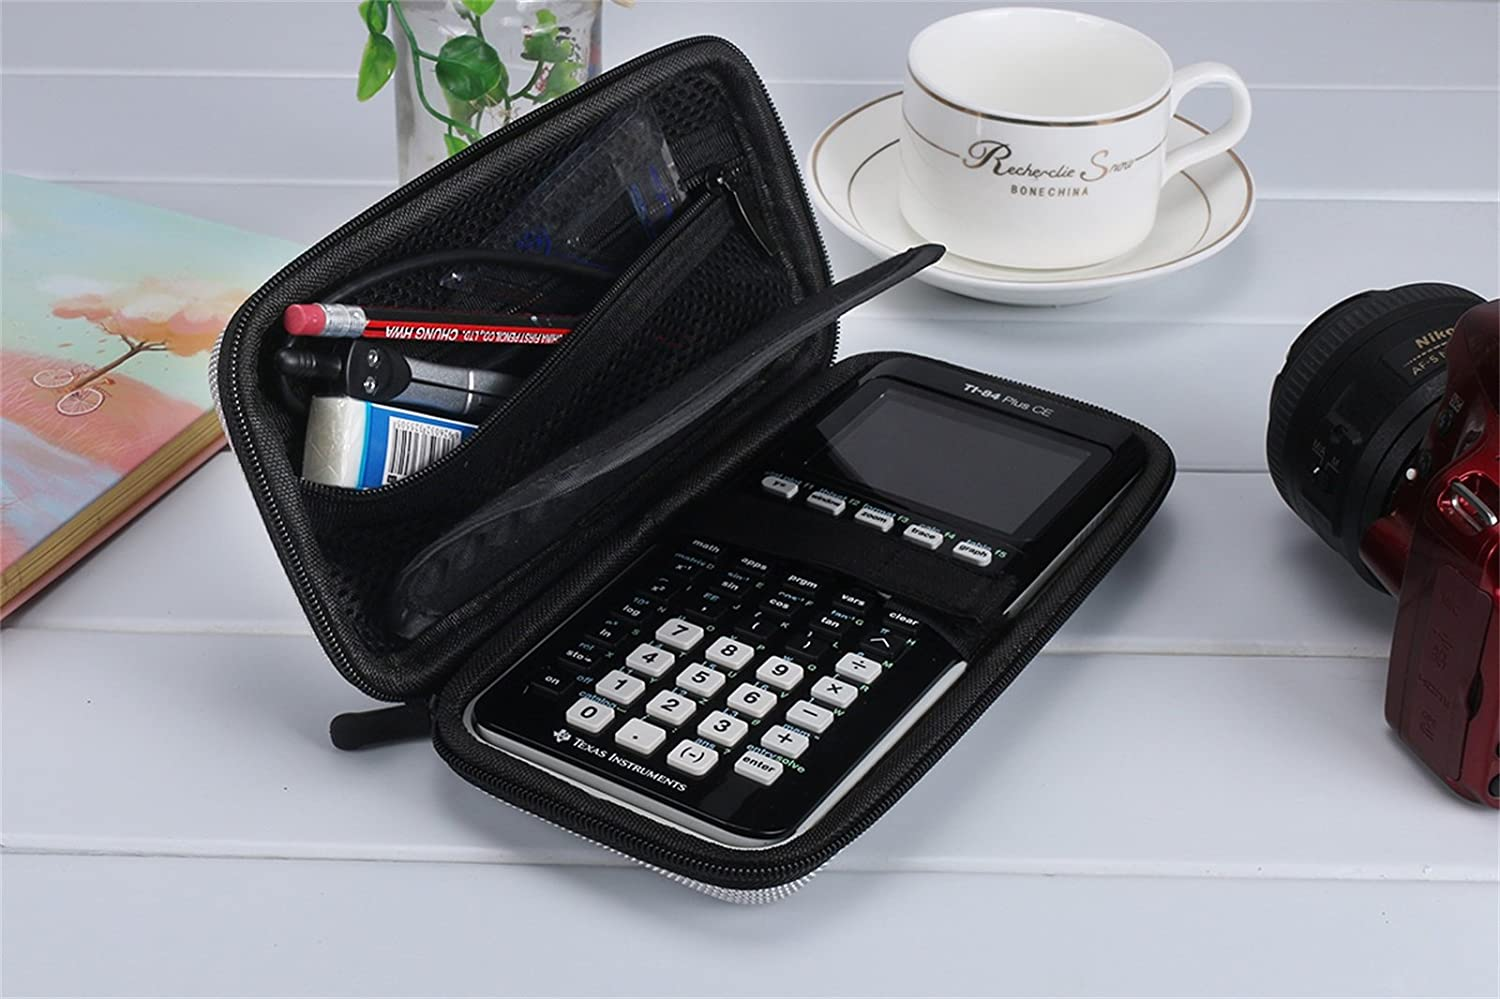 Gray HP 50G Graphing Scientific Financial Calculators Xberstar Hard EVA Shockproof Carry Case Bag Pouch for Texas Instruments TI-84 Plus CE//Color TI-83 Plus,TI-89 Titanium